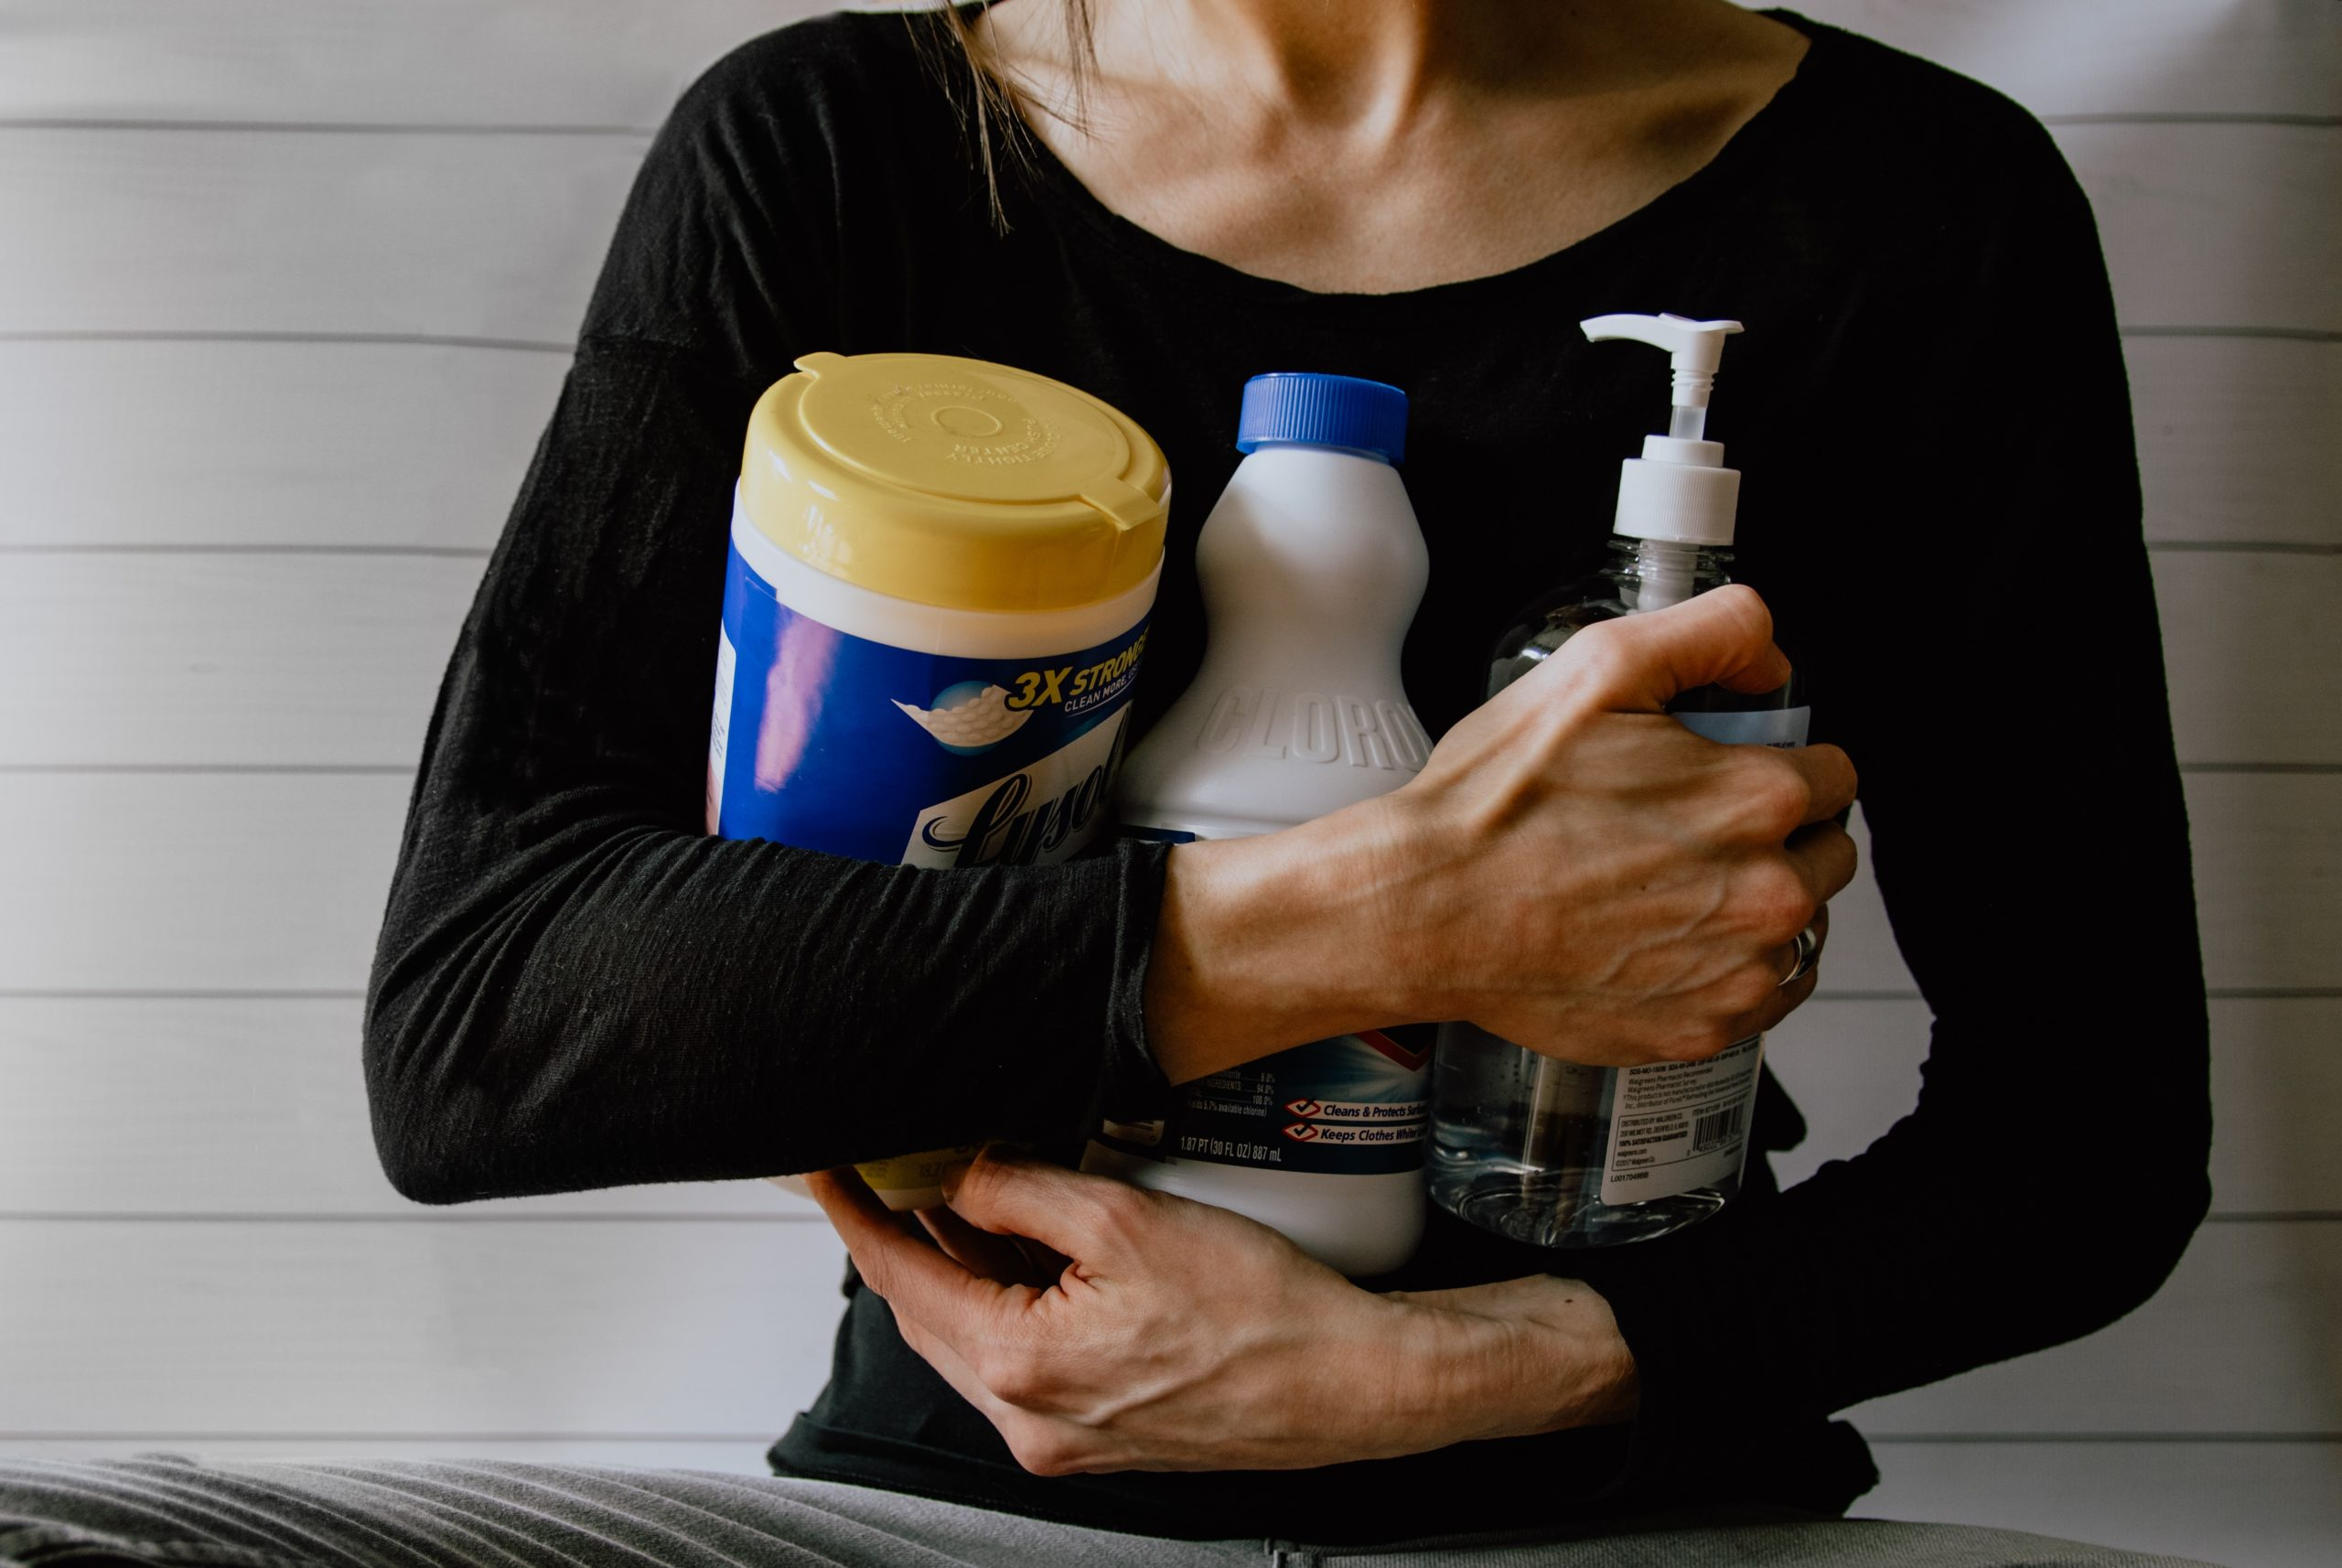 woman holding cleansers